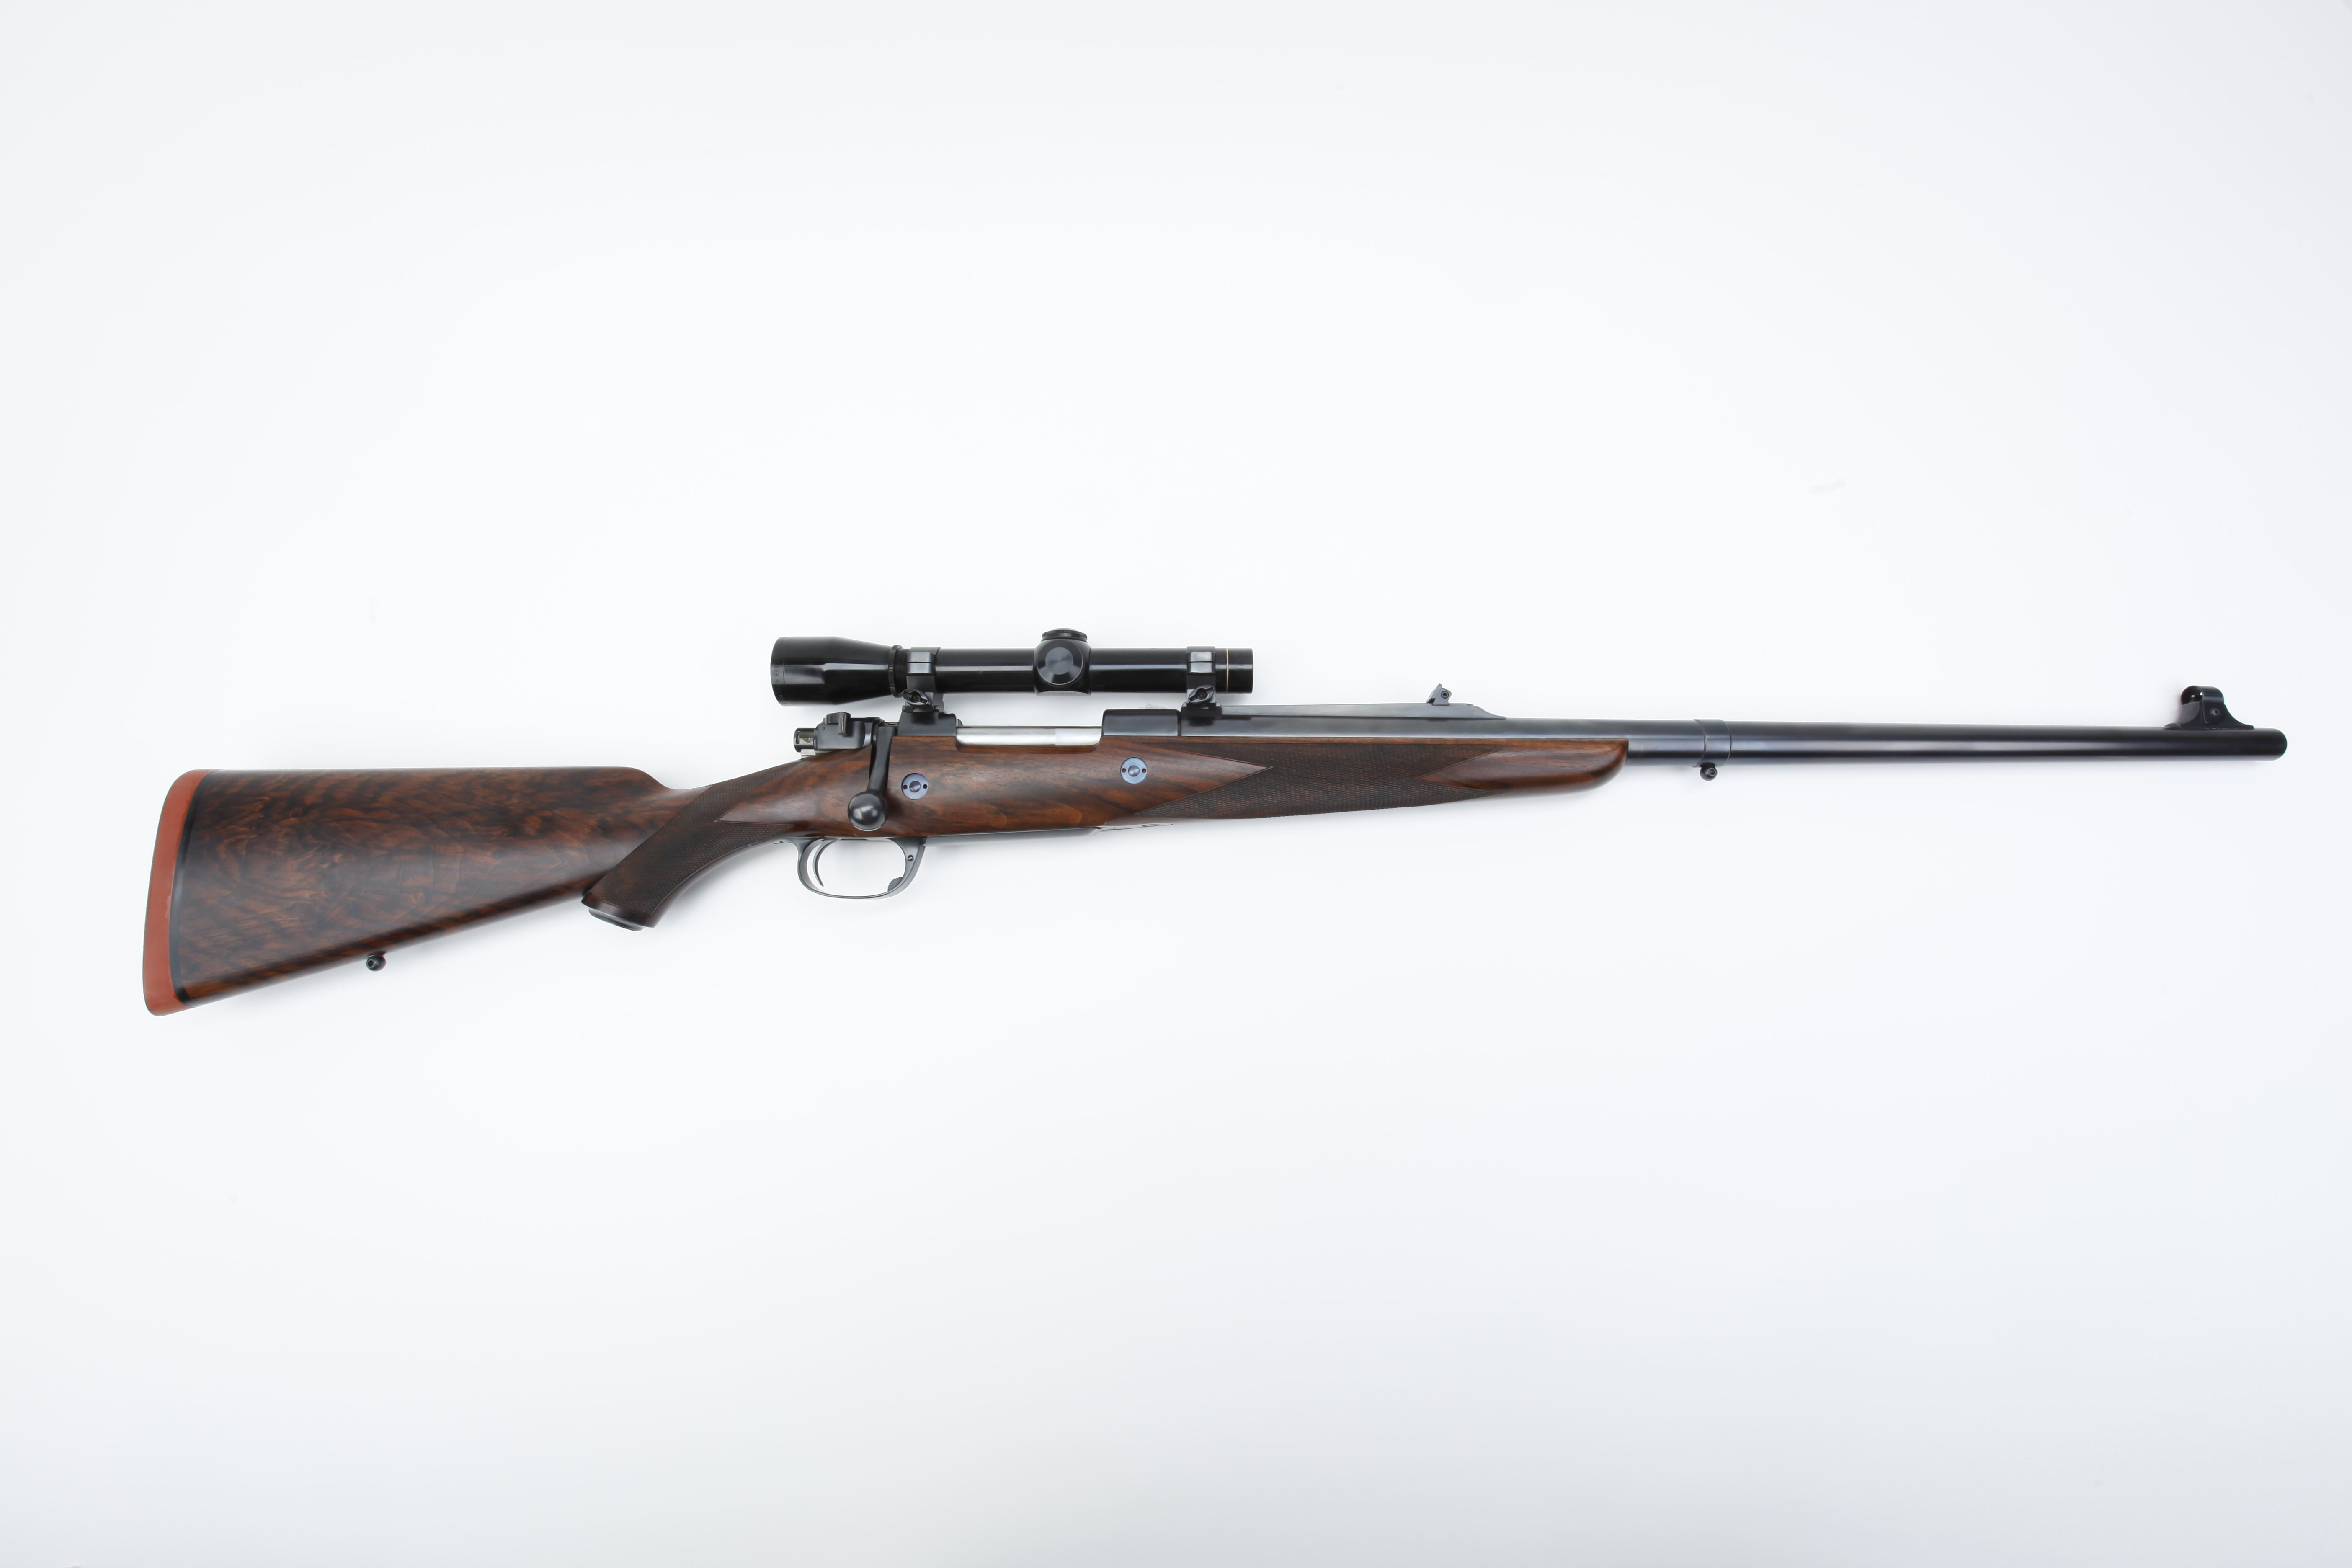 Hoenig Custom Bolt Action Rifle - .458 Winchester Magnum cal.